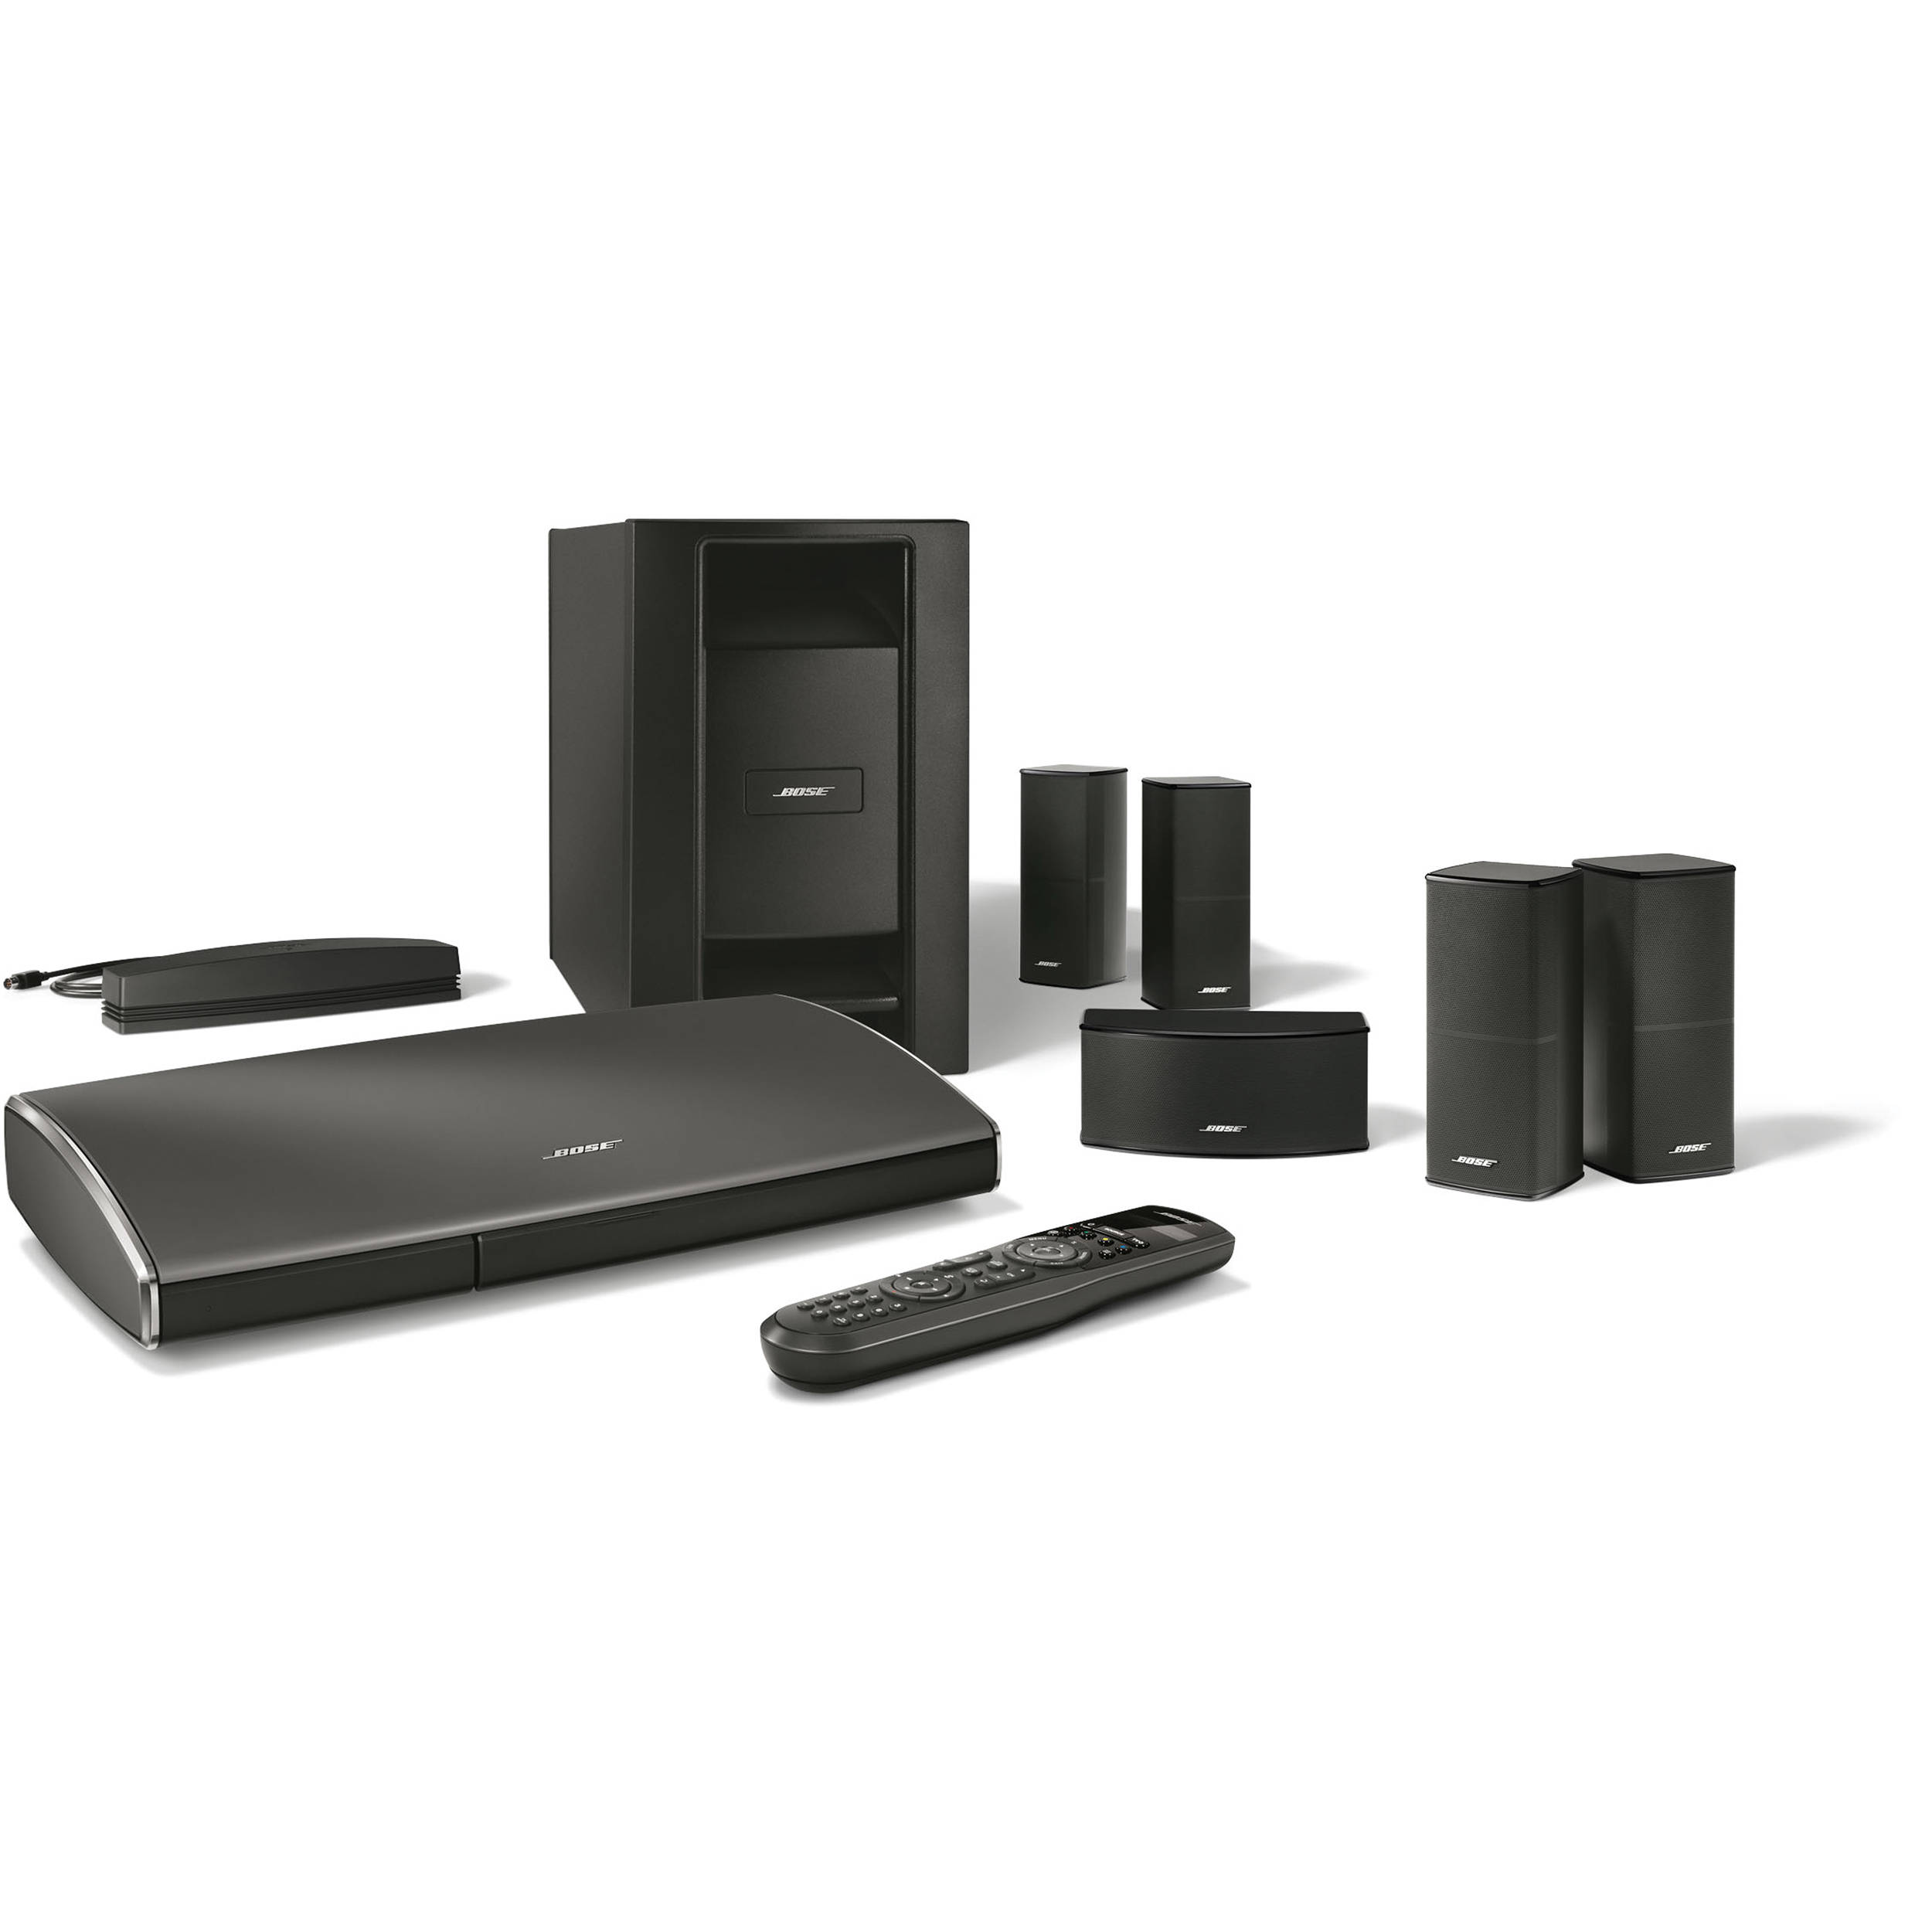 Bose Lifestyle 535 Series III Home Theater System 715604 1100